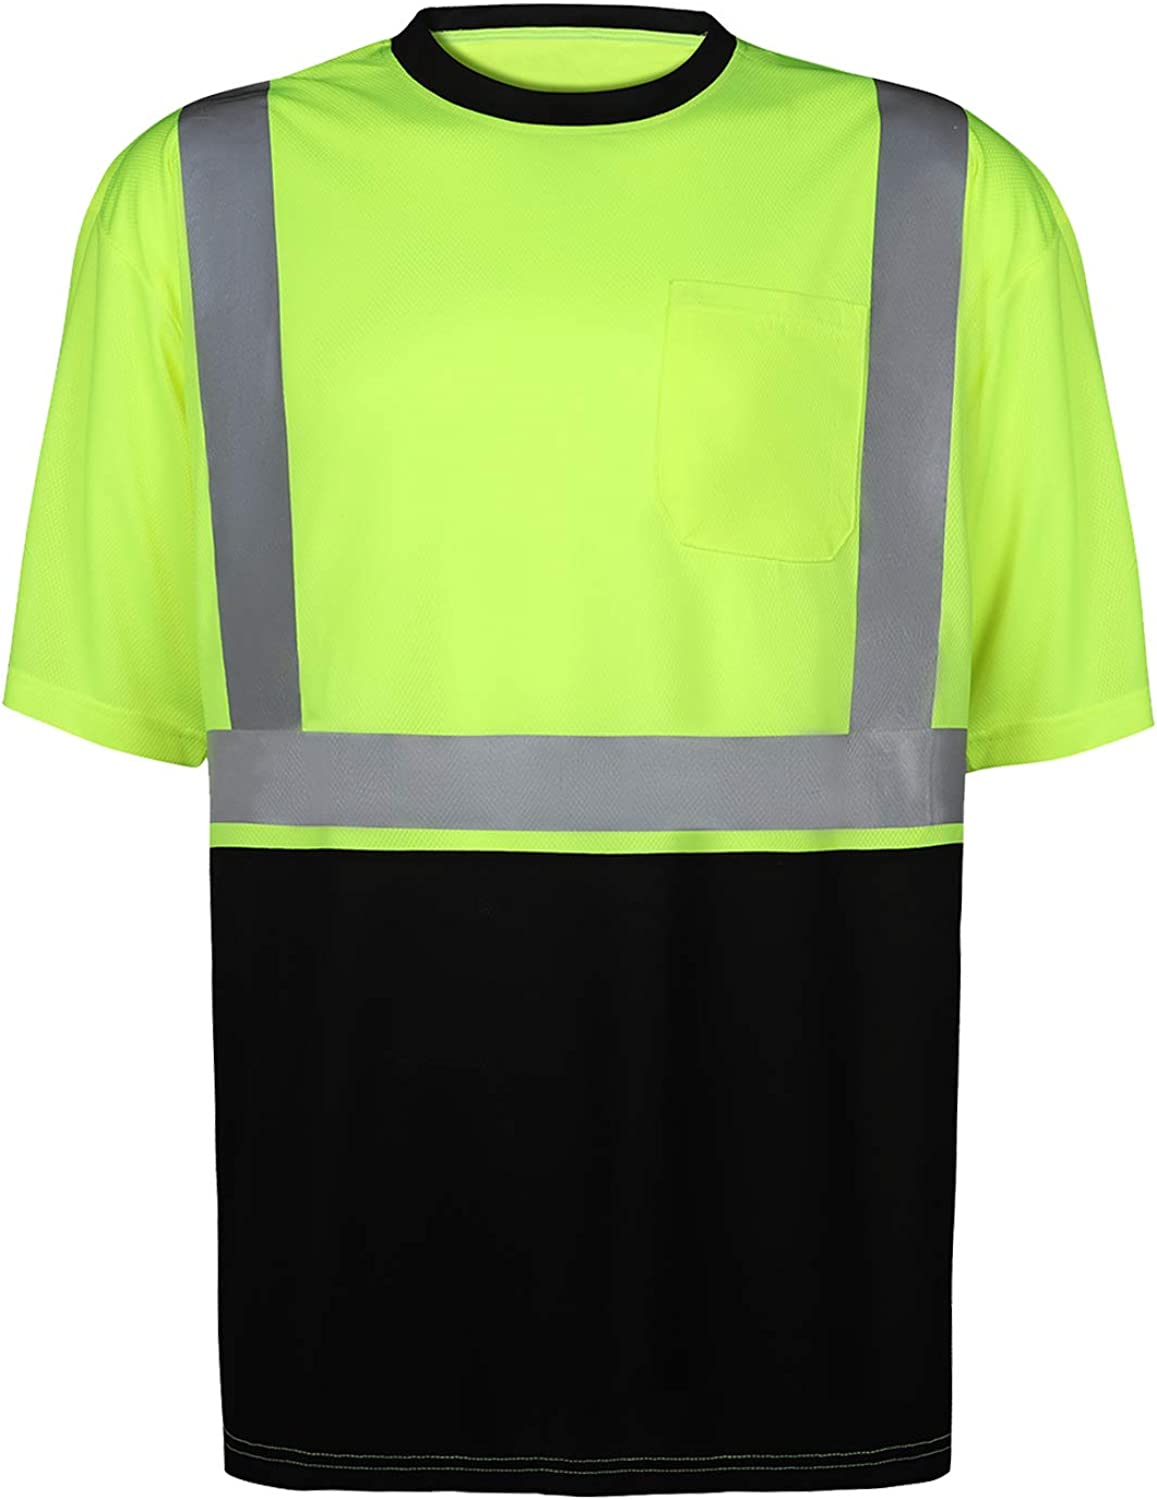 DFTD High-Visibility Class 2 T Moisture Cheap SALE Challenge the lowest price Start with Mesh Shirt Wicking